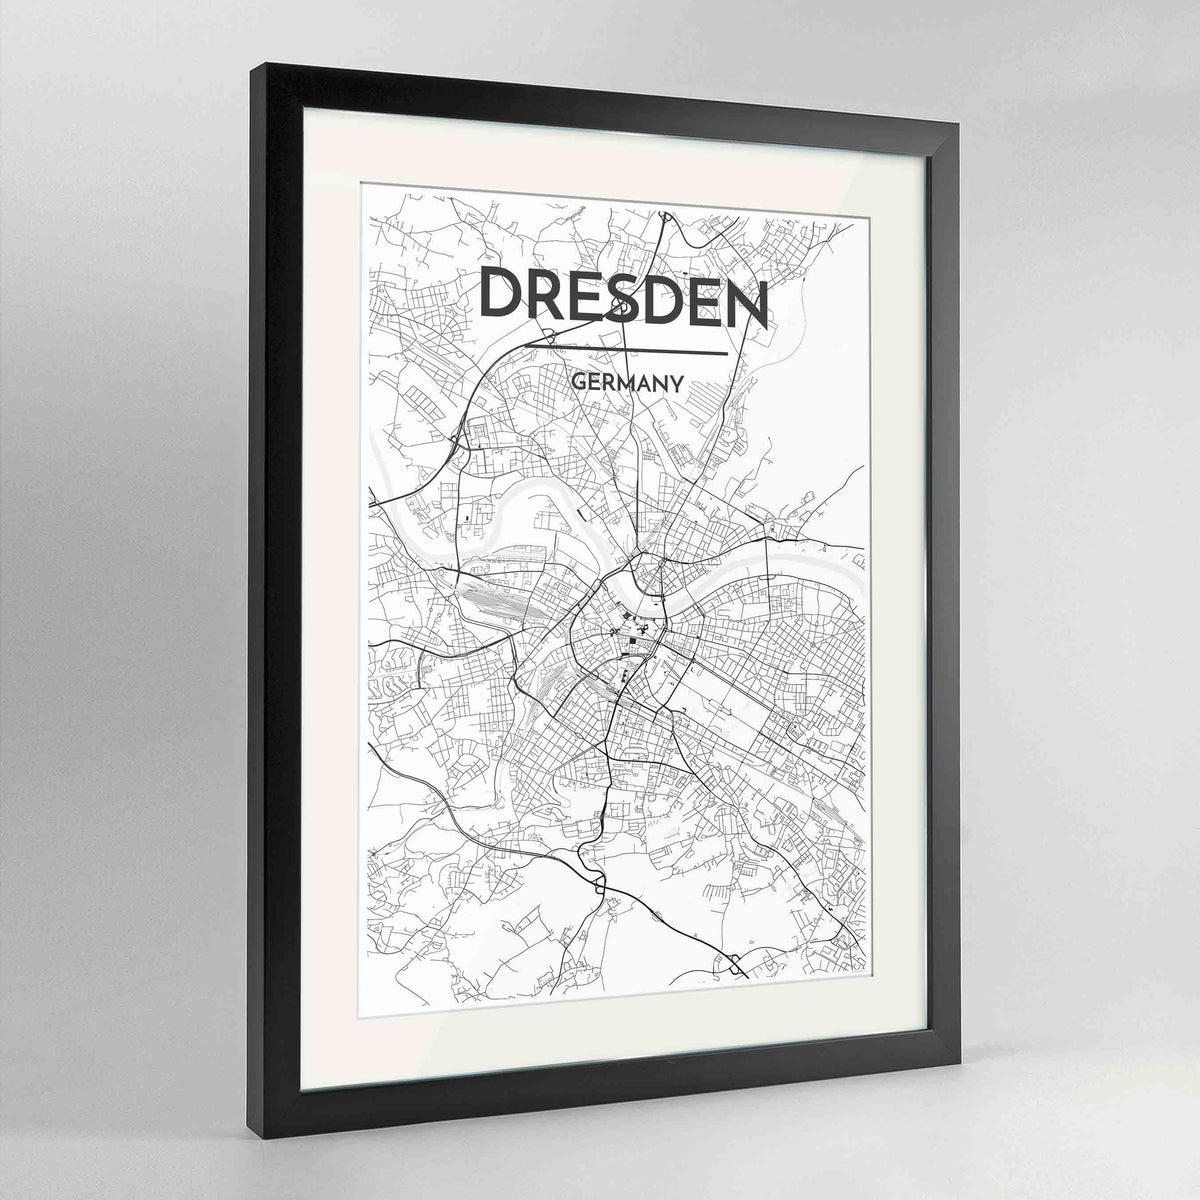 "Framed Dresden Map Art Print 24x36"" Contemporary Black frame Point Two Design Group"